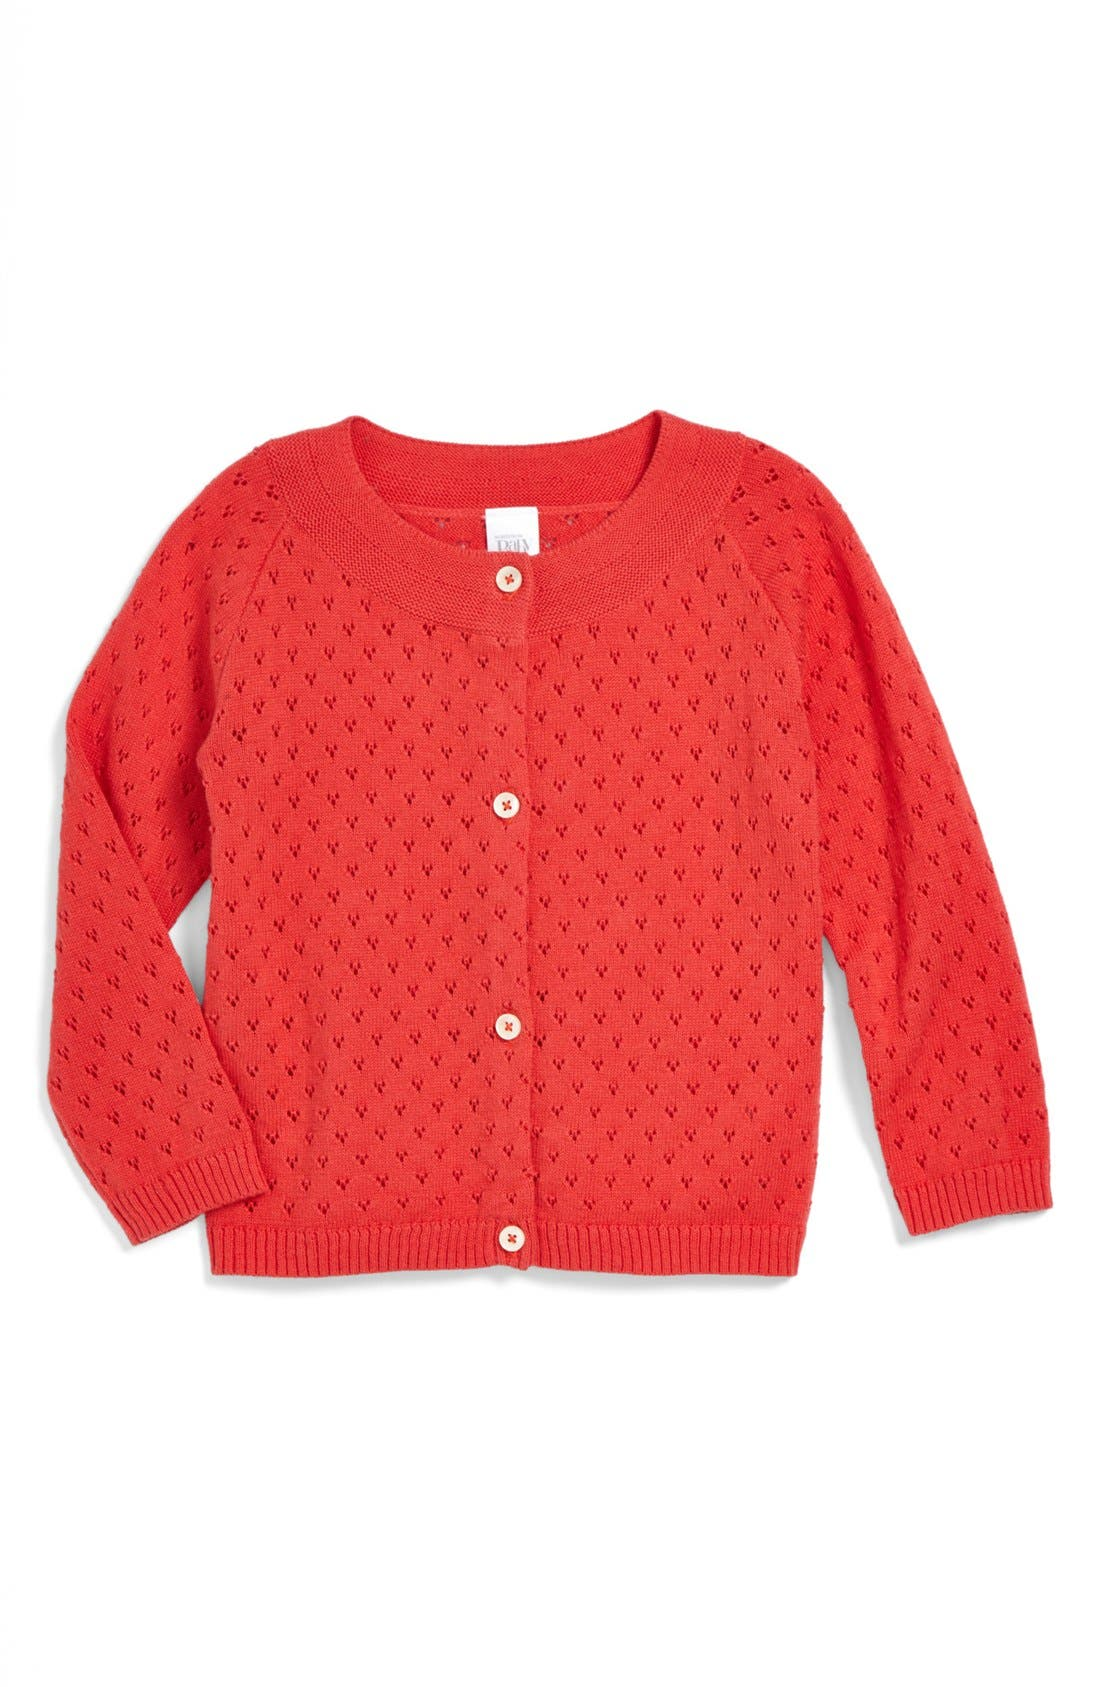 Alternate Image 1 Selected - Nordstrom Baby Pointelle Cardigan (Baby Girls)